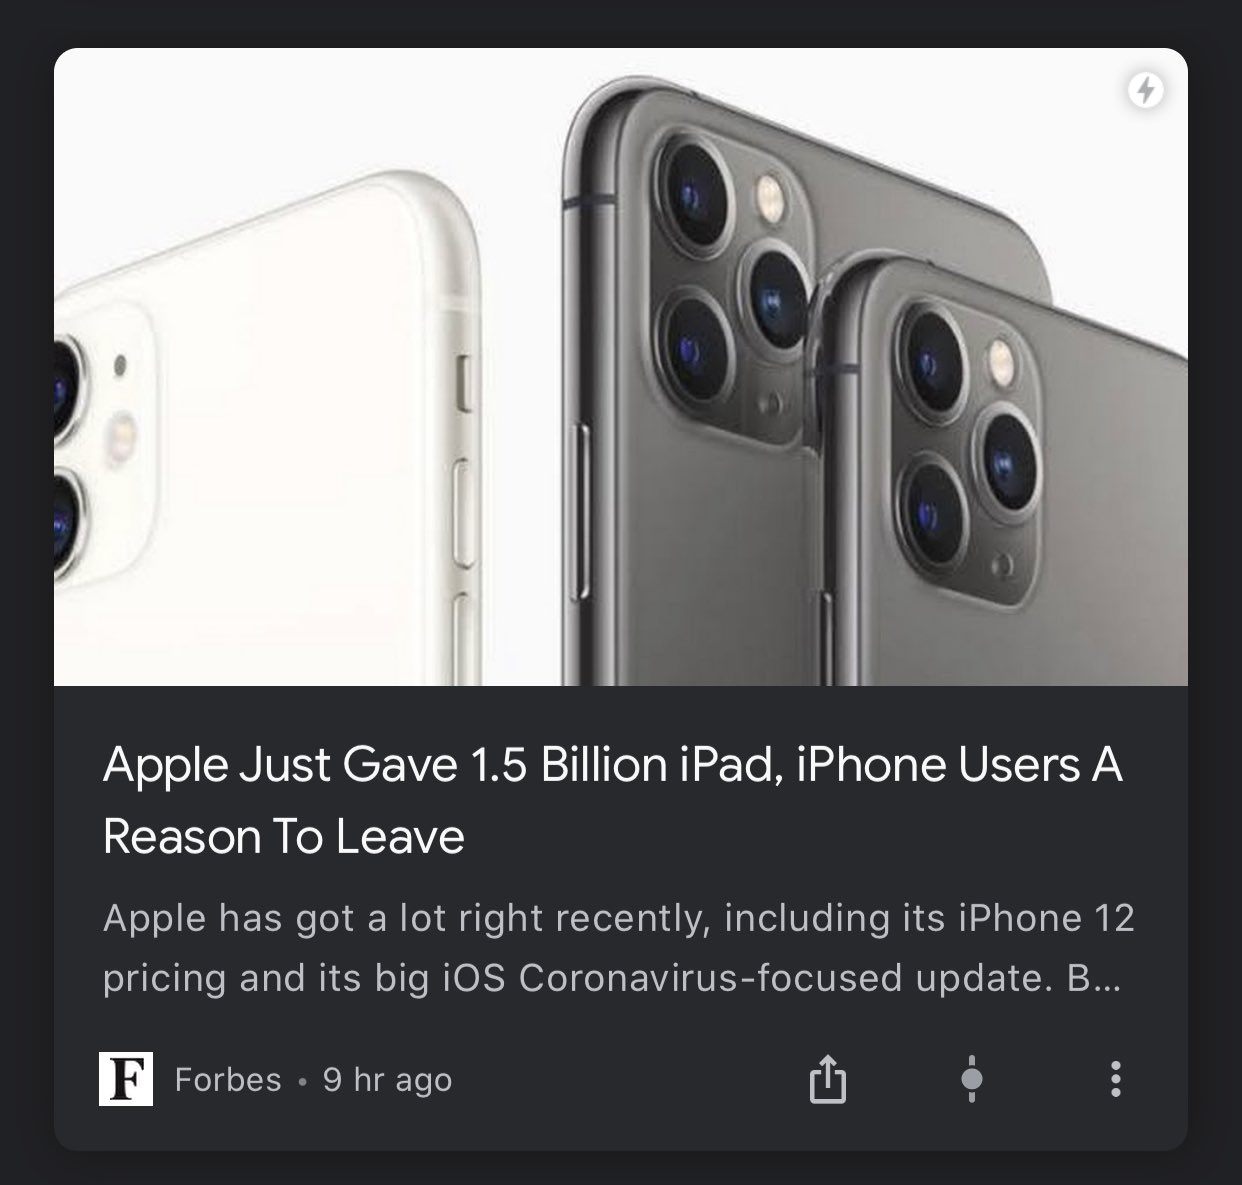 I think forbes never uses apple products at their office. Even to write this piece. #tech #madness https://t.co/9UjSiq8Rsy